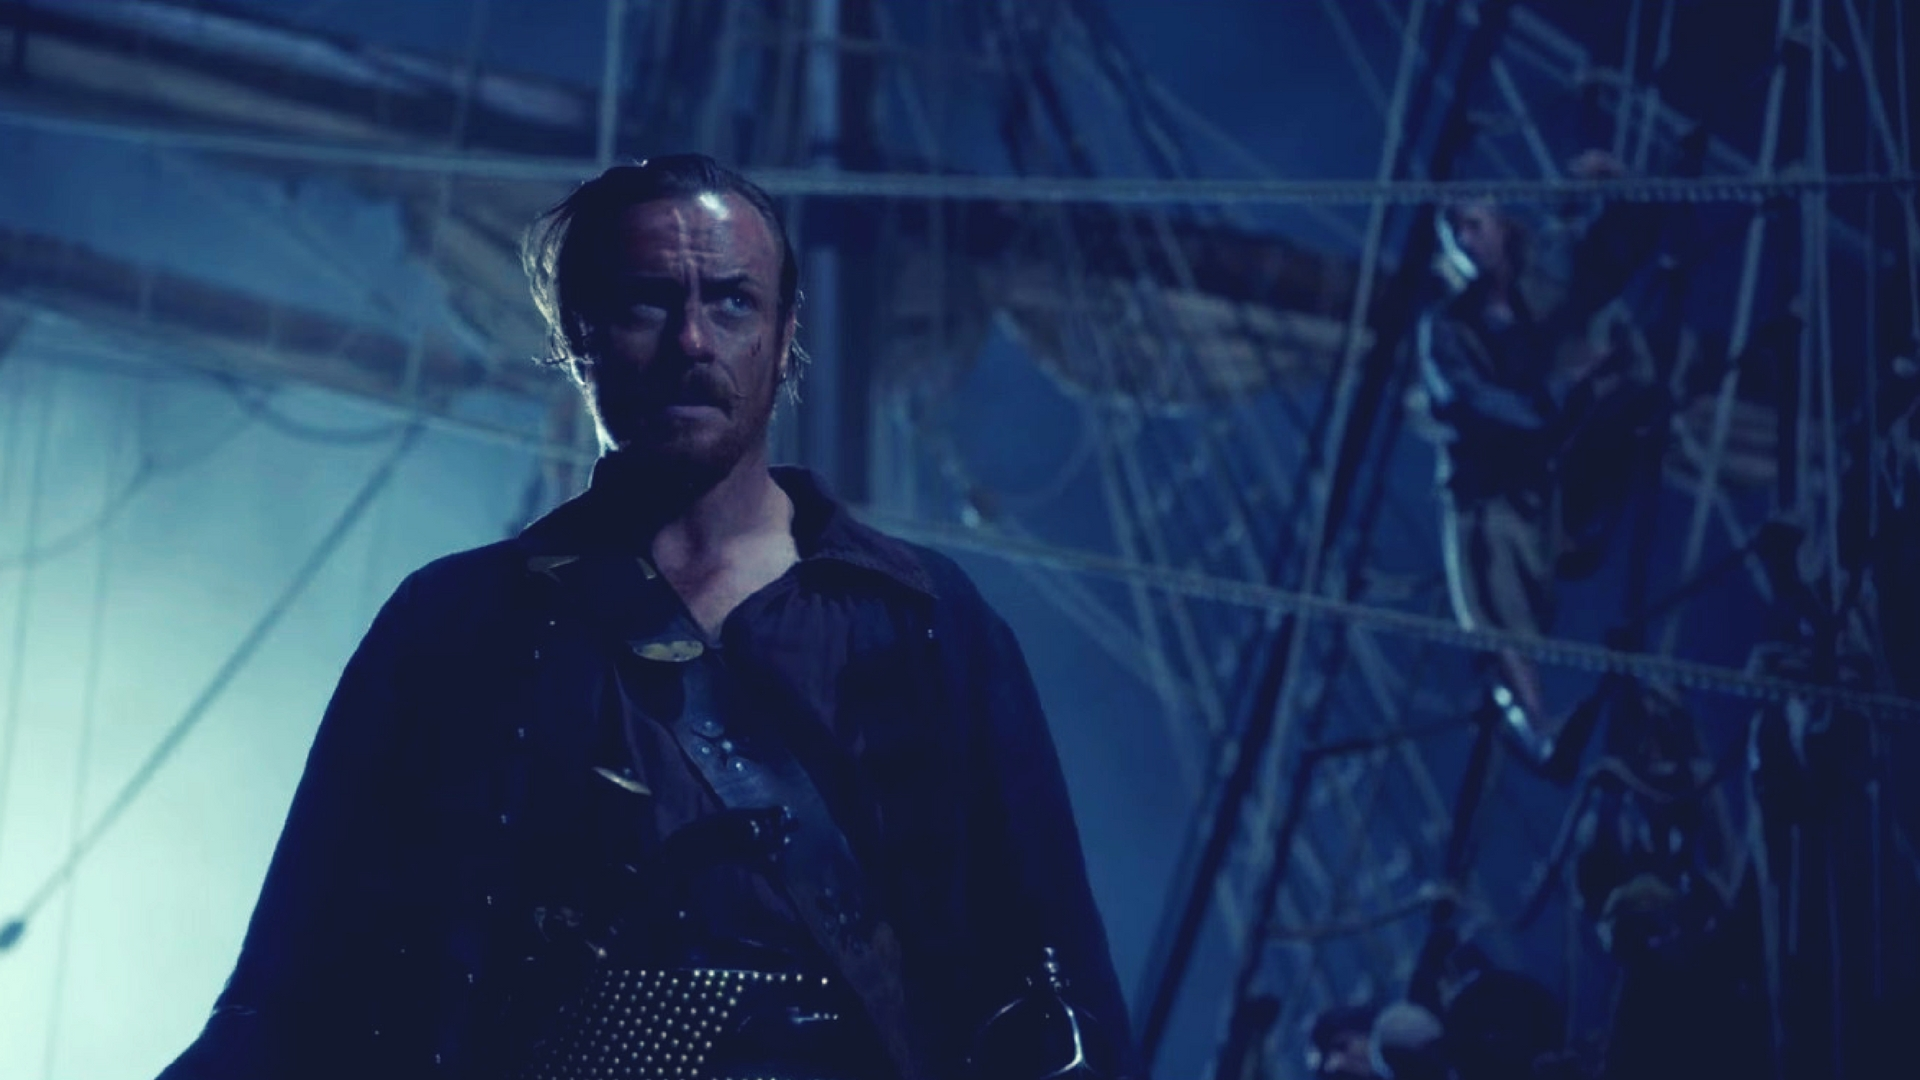 toby stephens in black sails season 4 produced by micheal bay